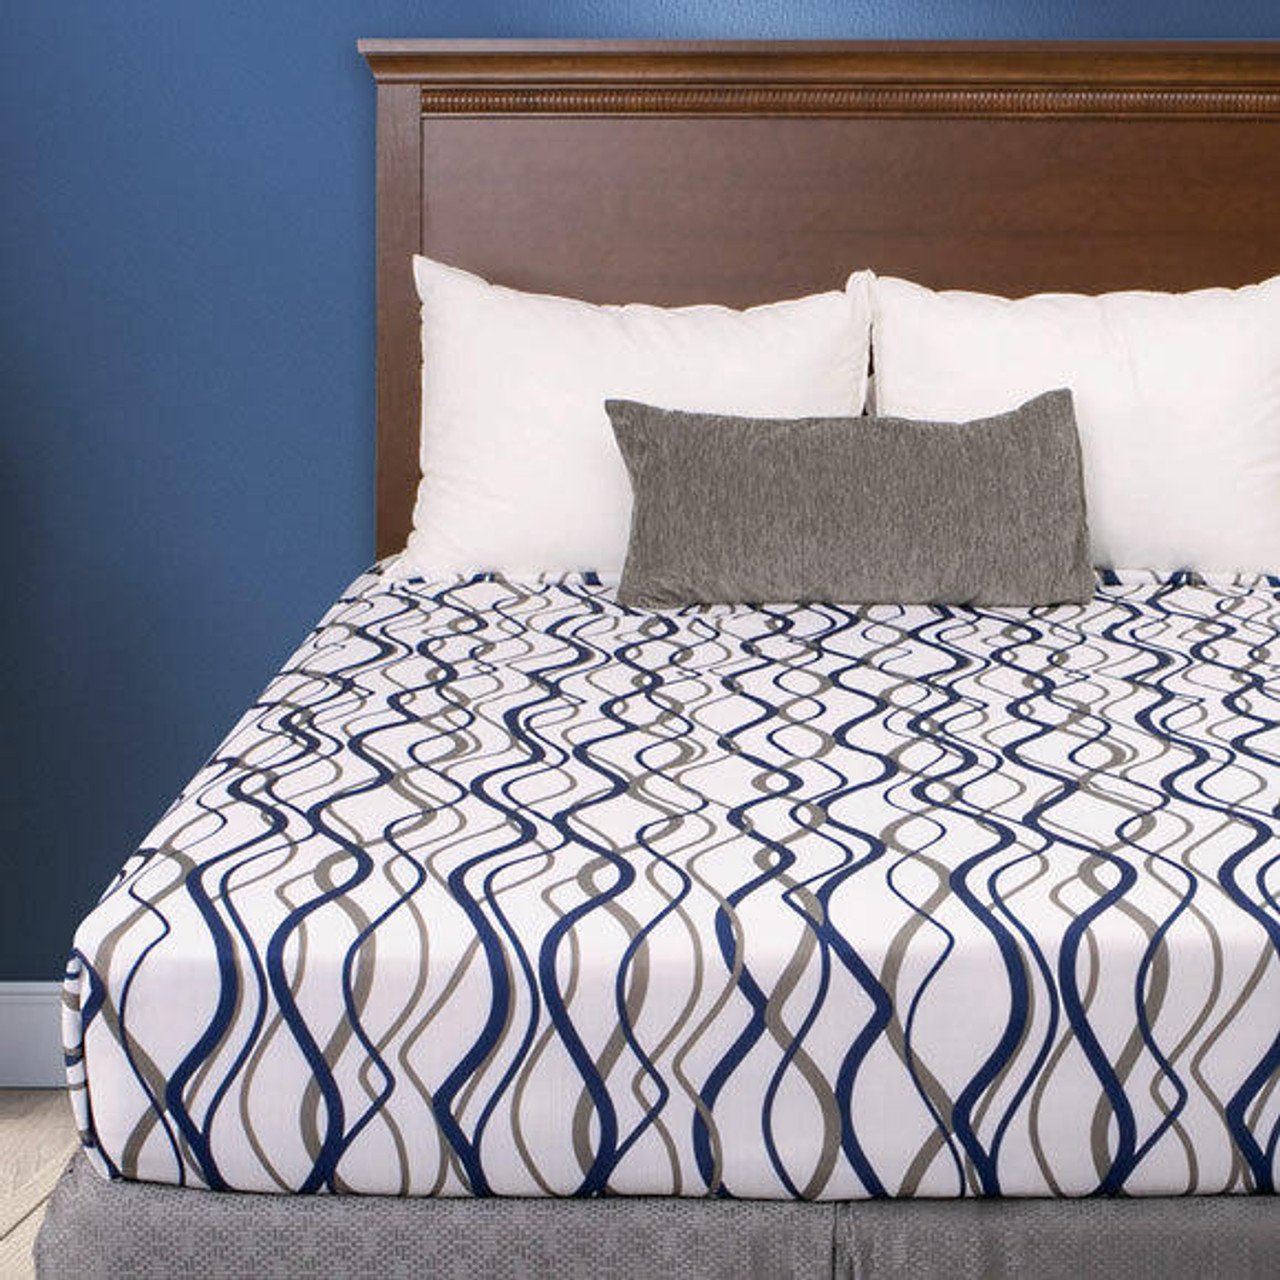 KTX Wavy Stripes Top Sheet by Helix - All Colors and Sizes